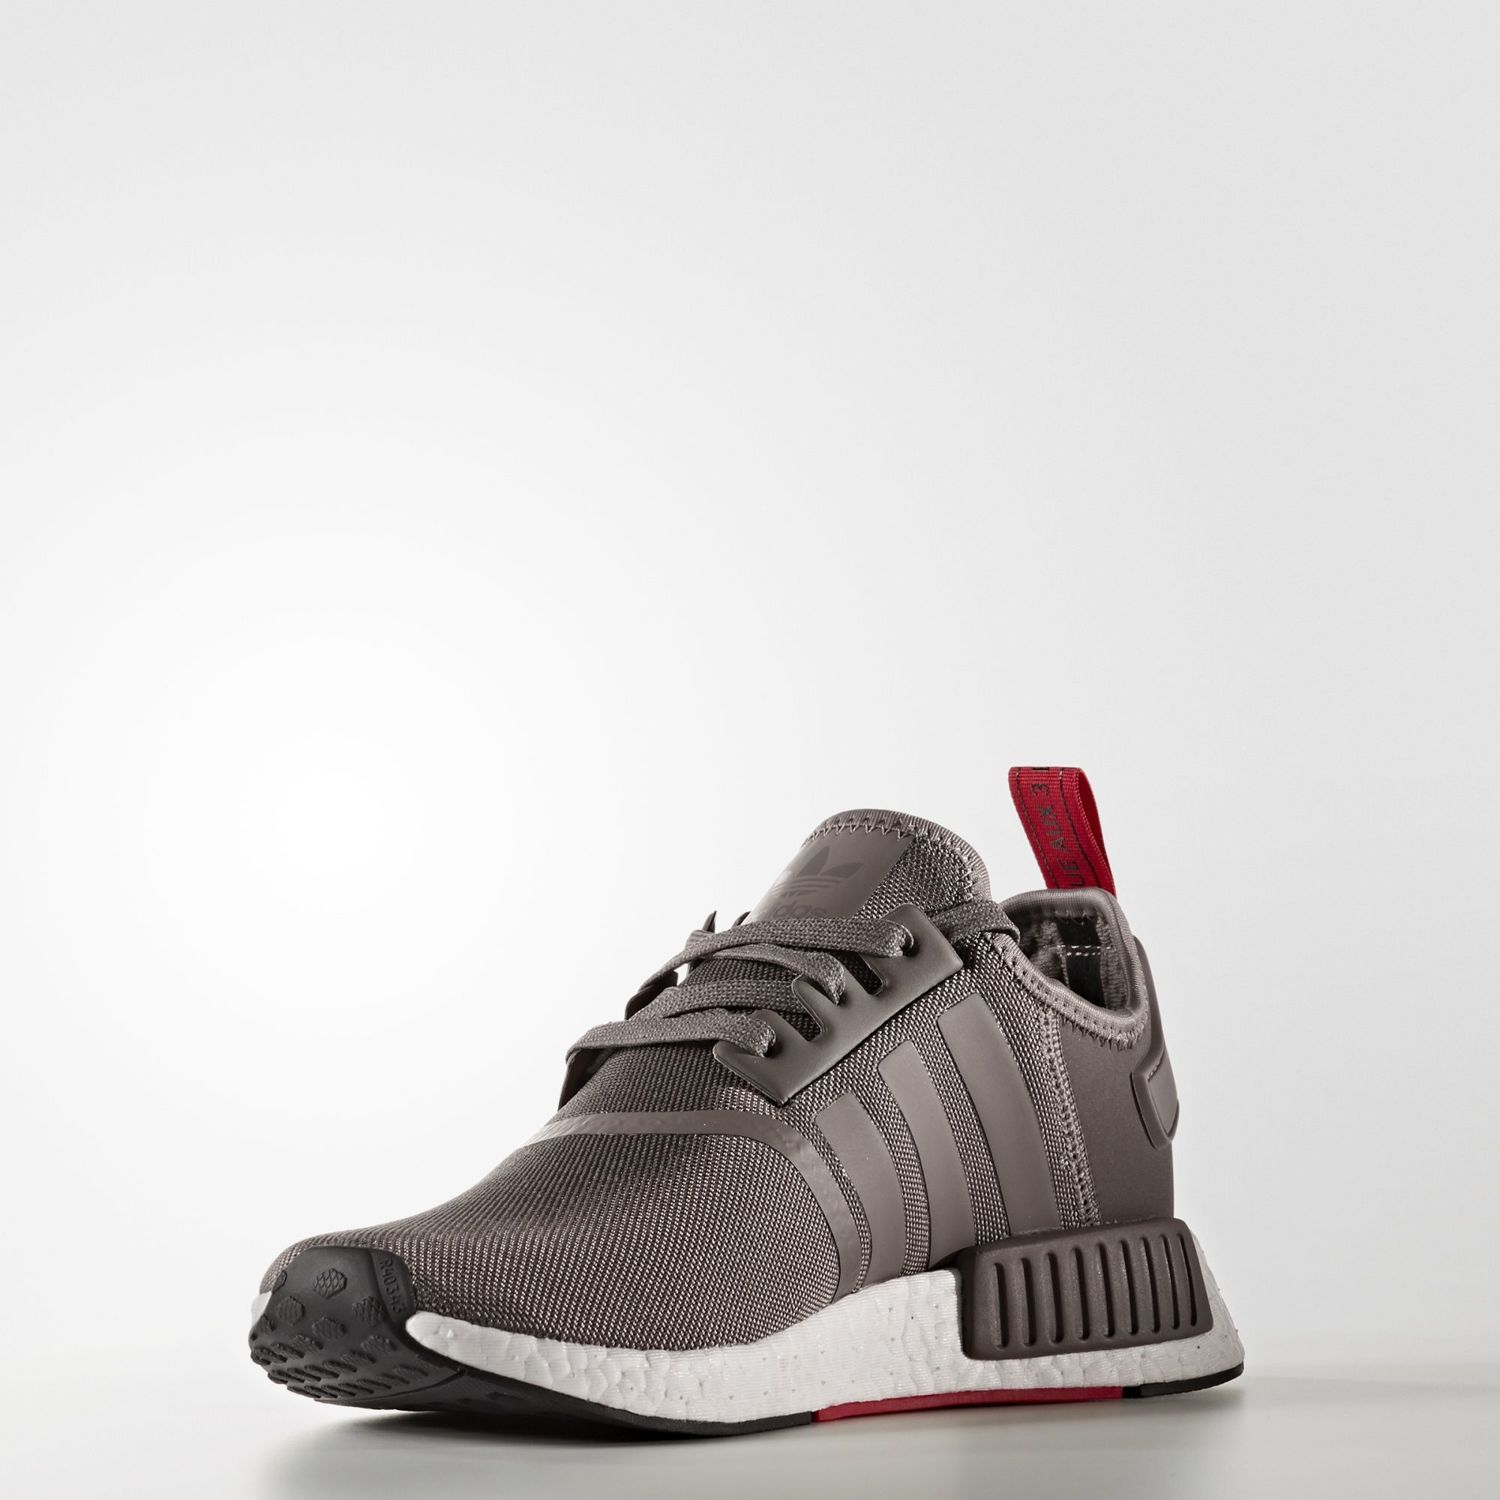 adidas NMD_R1 Tech Earth S81881